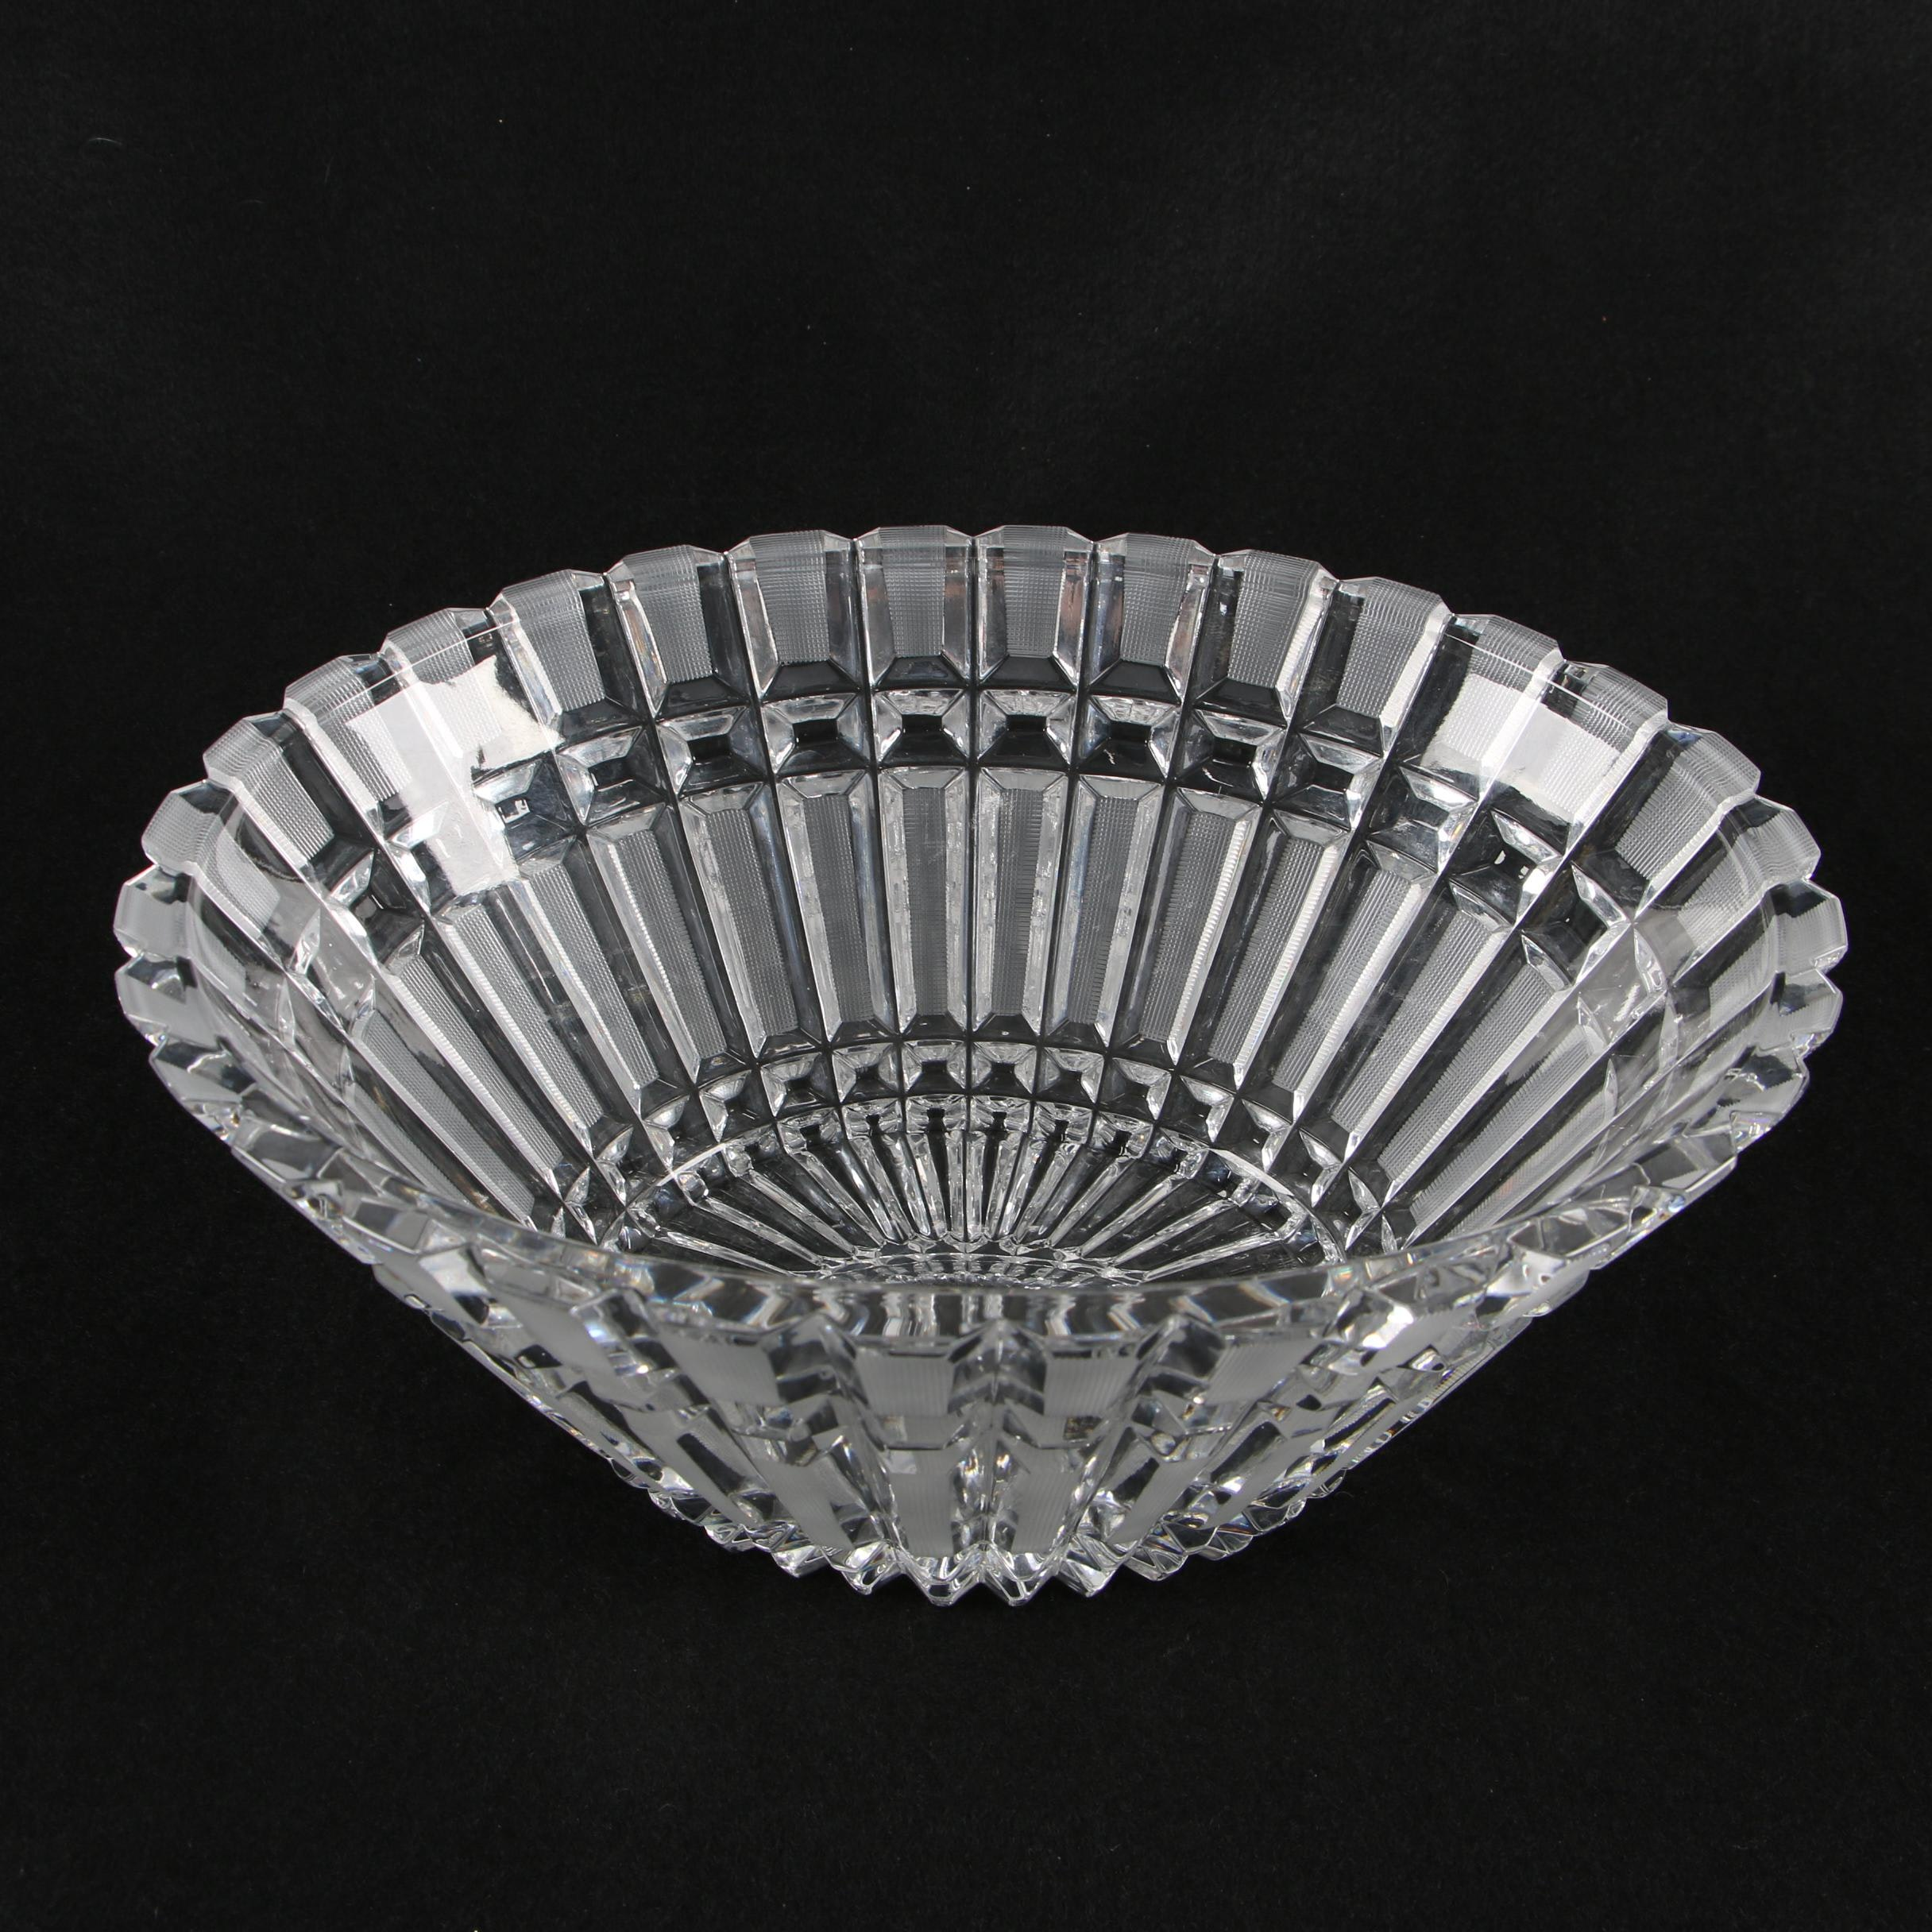 Oval Crystal Centerpiece Bowl with Panels of Strawberry Cuts